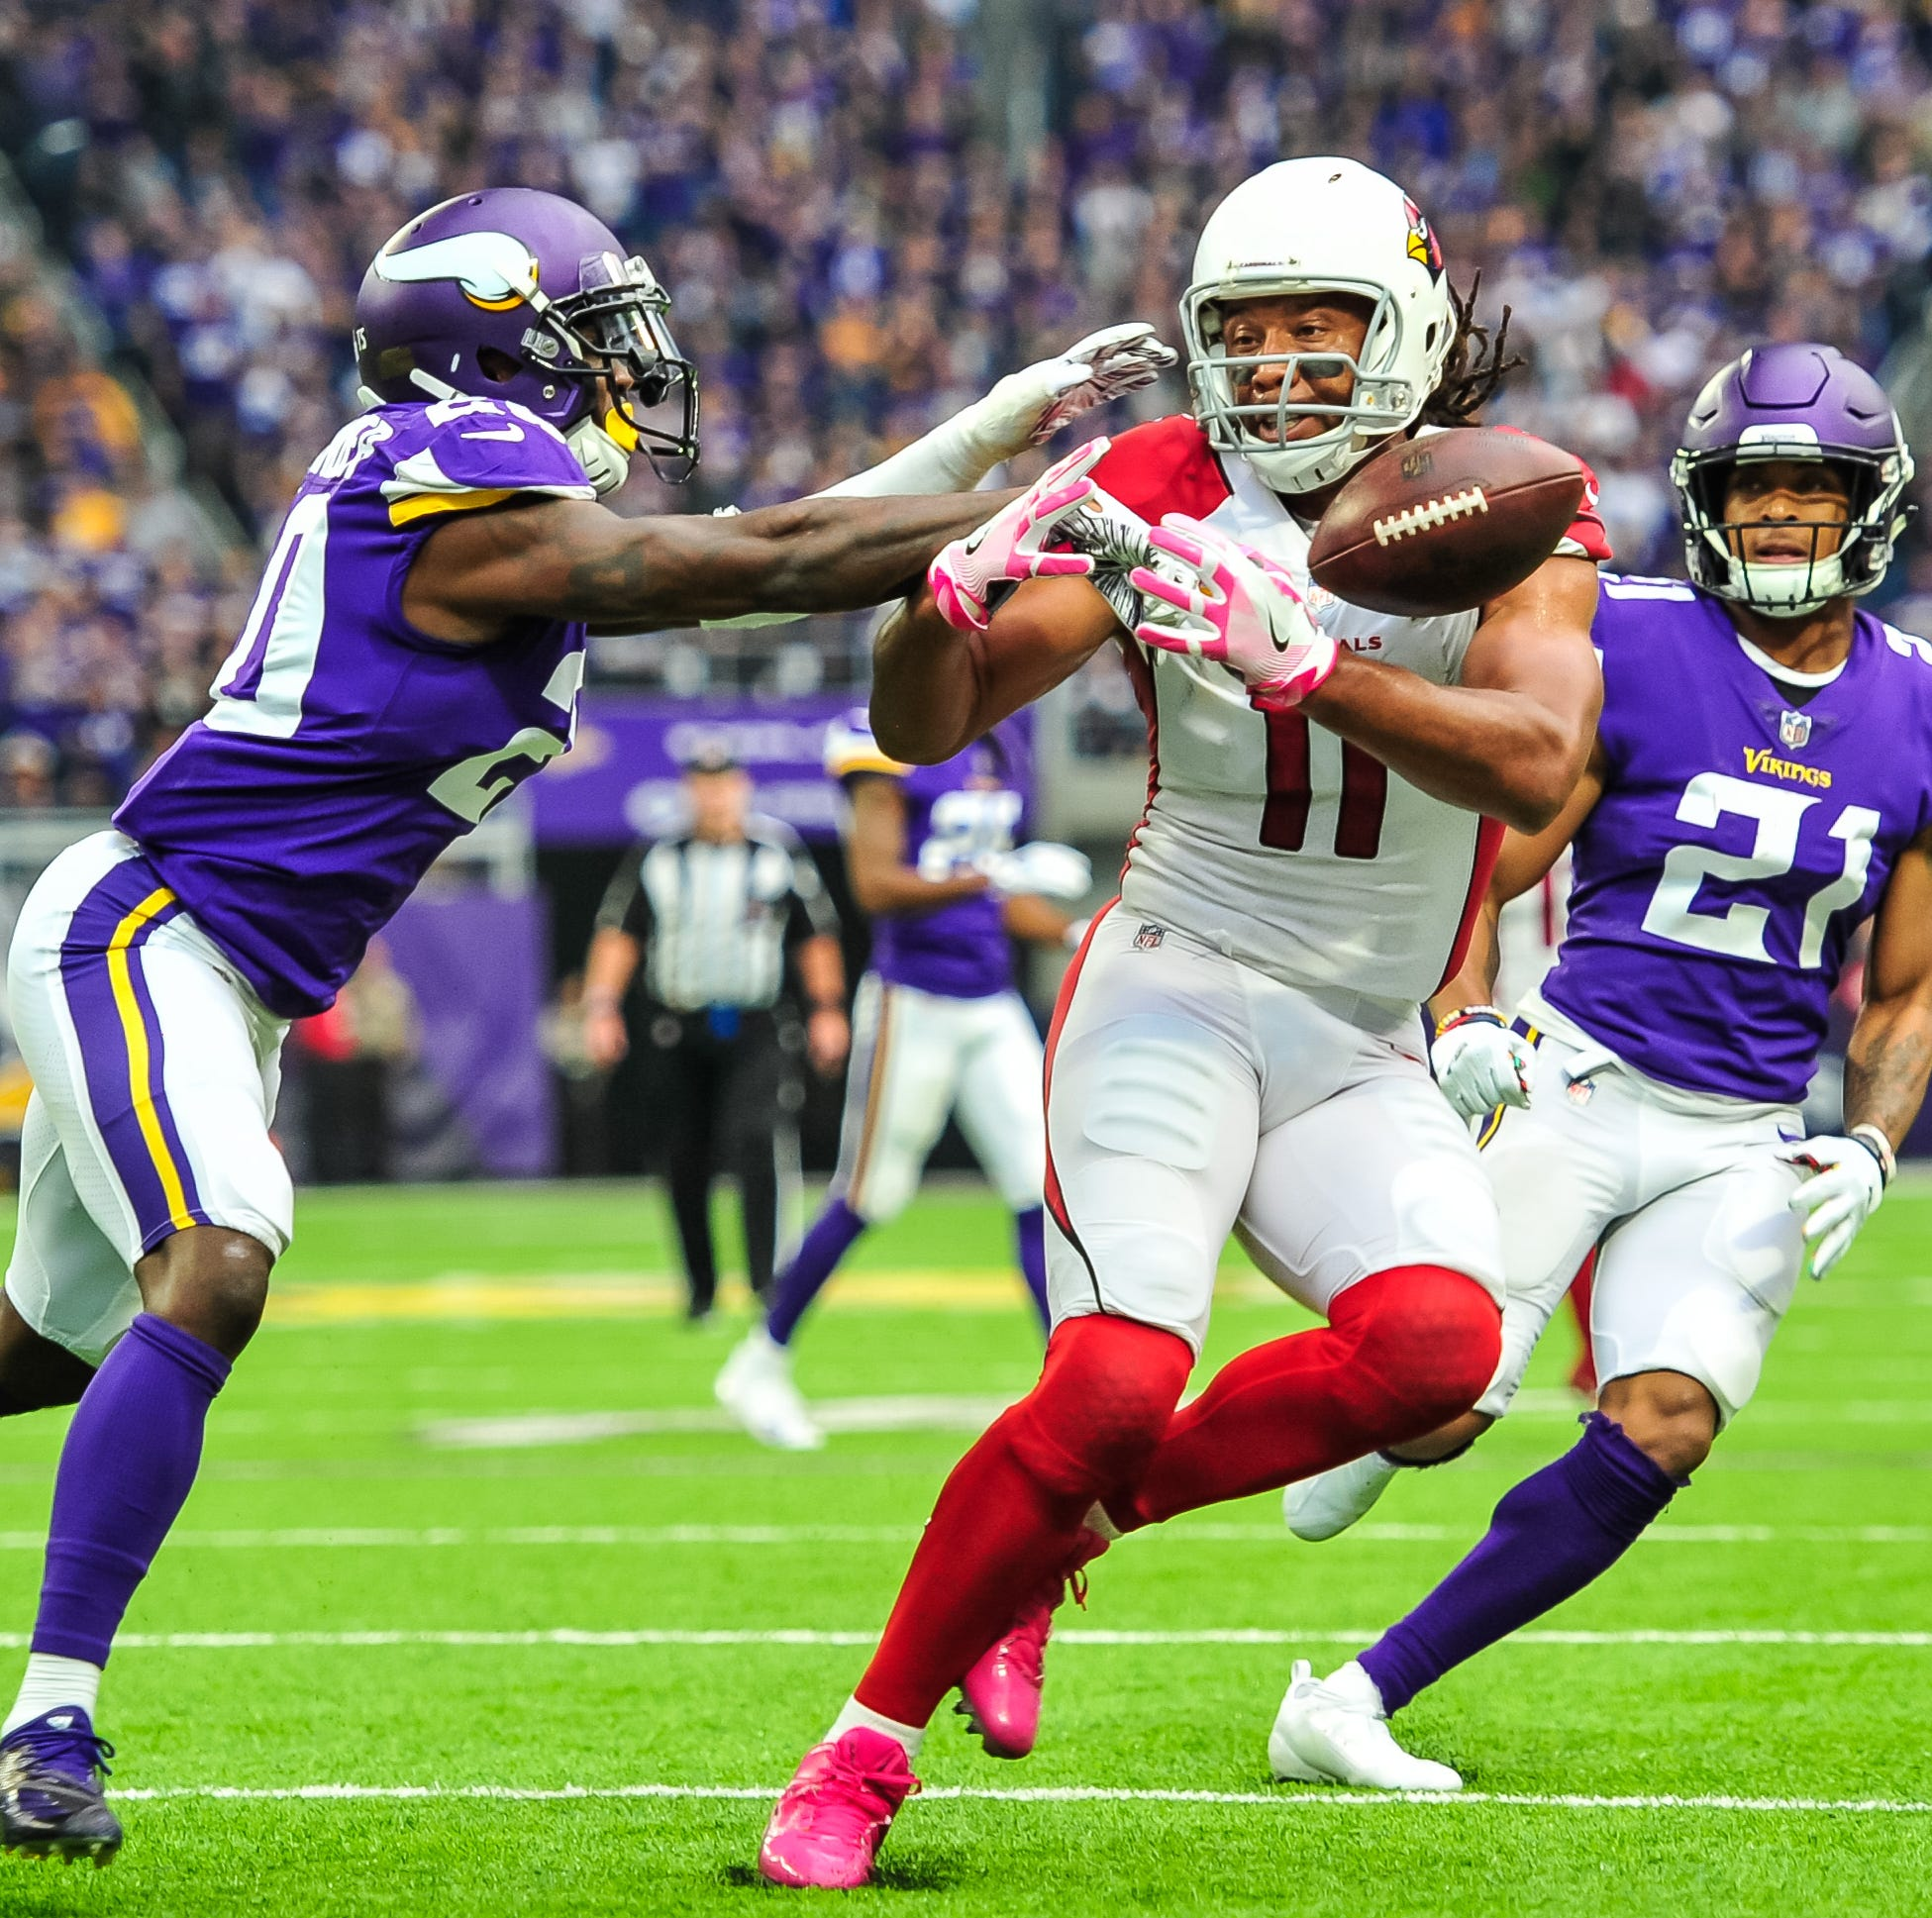 Larry Fitzgerald's dad rips Arizona Cardinals' Mike McCoy, Steve Wilks on Twitter